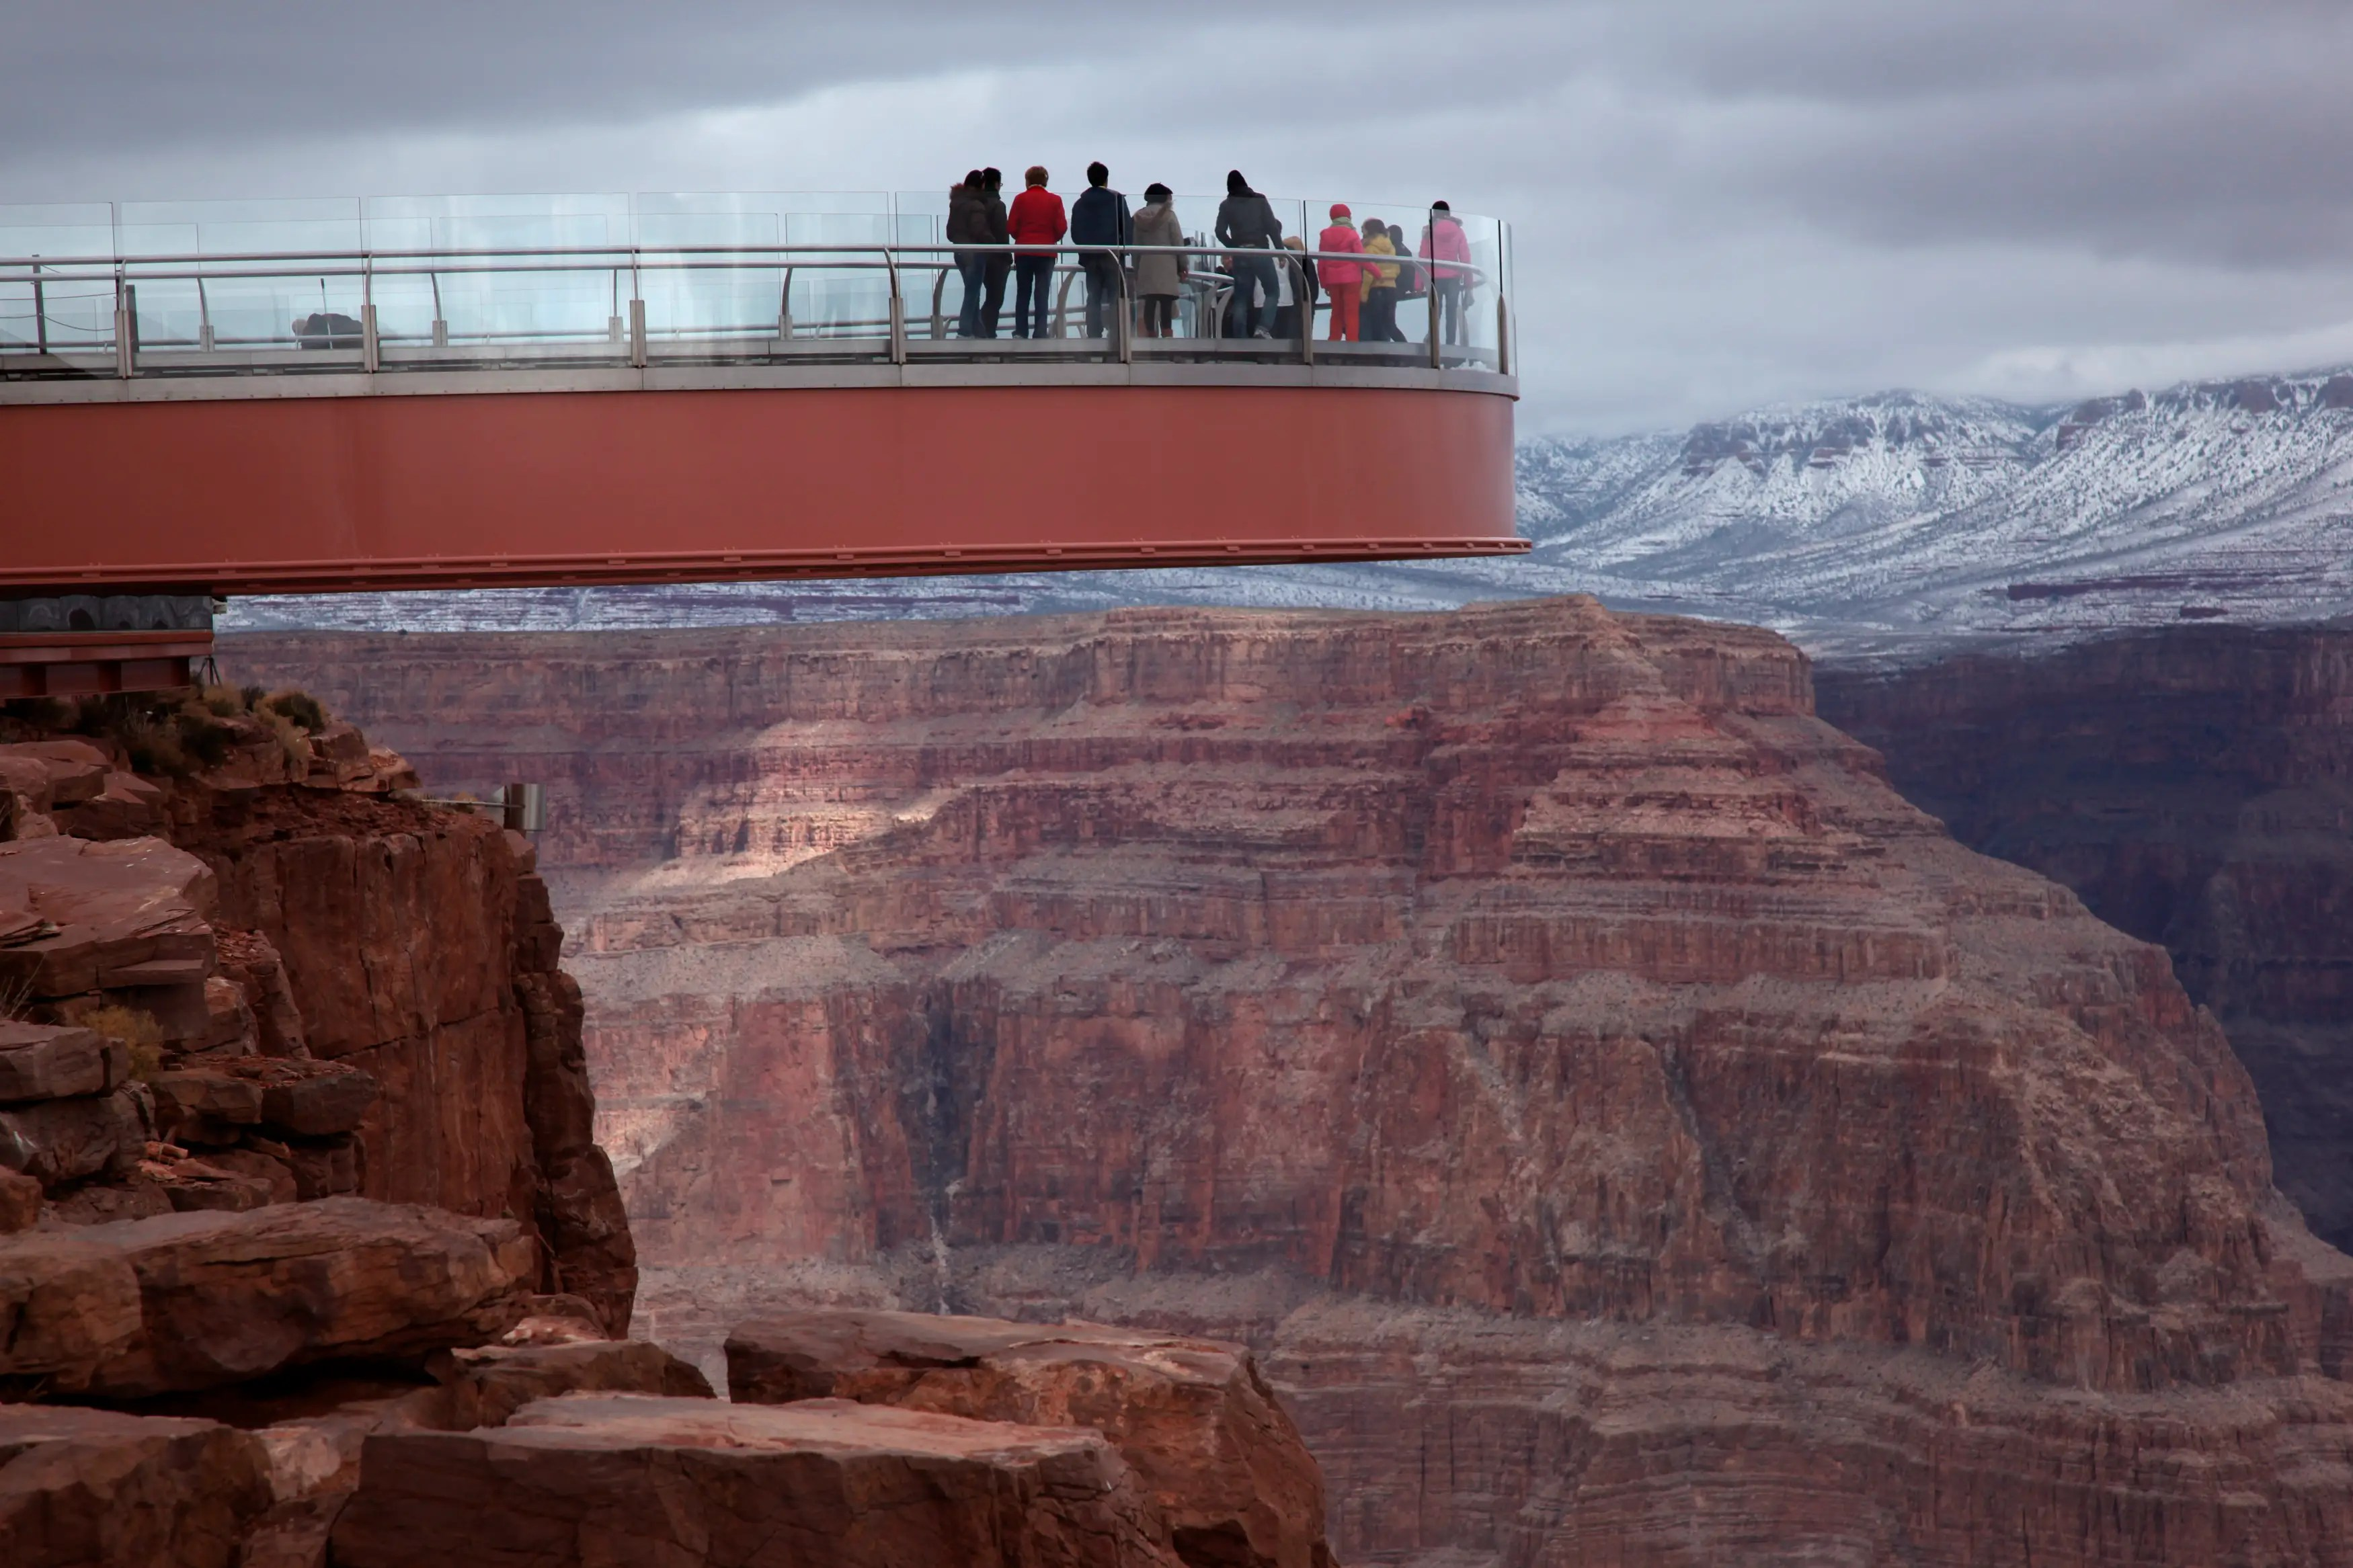 Visitors stand on a skywalk extending out over the Grand Canyon in this view on the Hualapai Indian Reservation, Arizona.